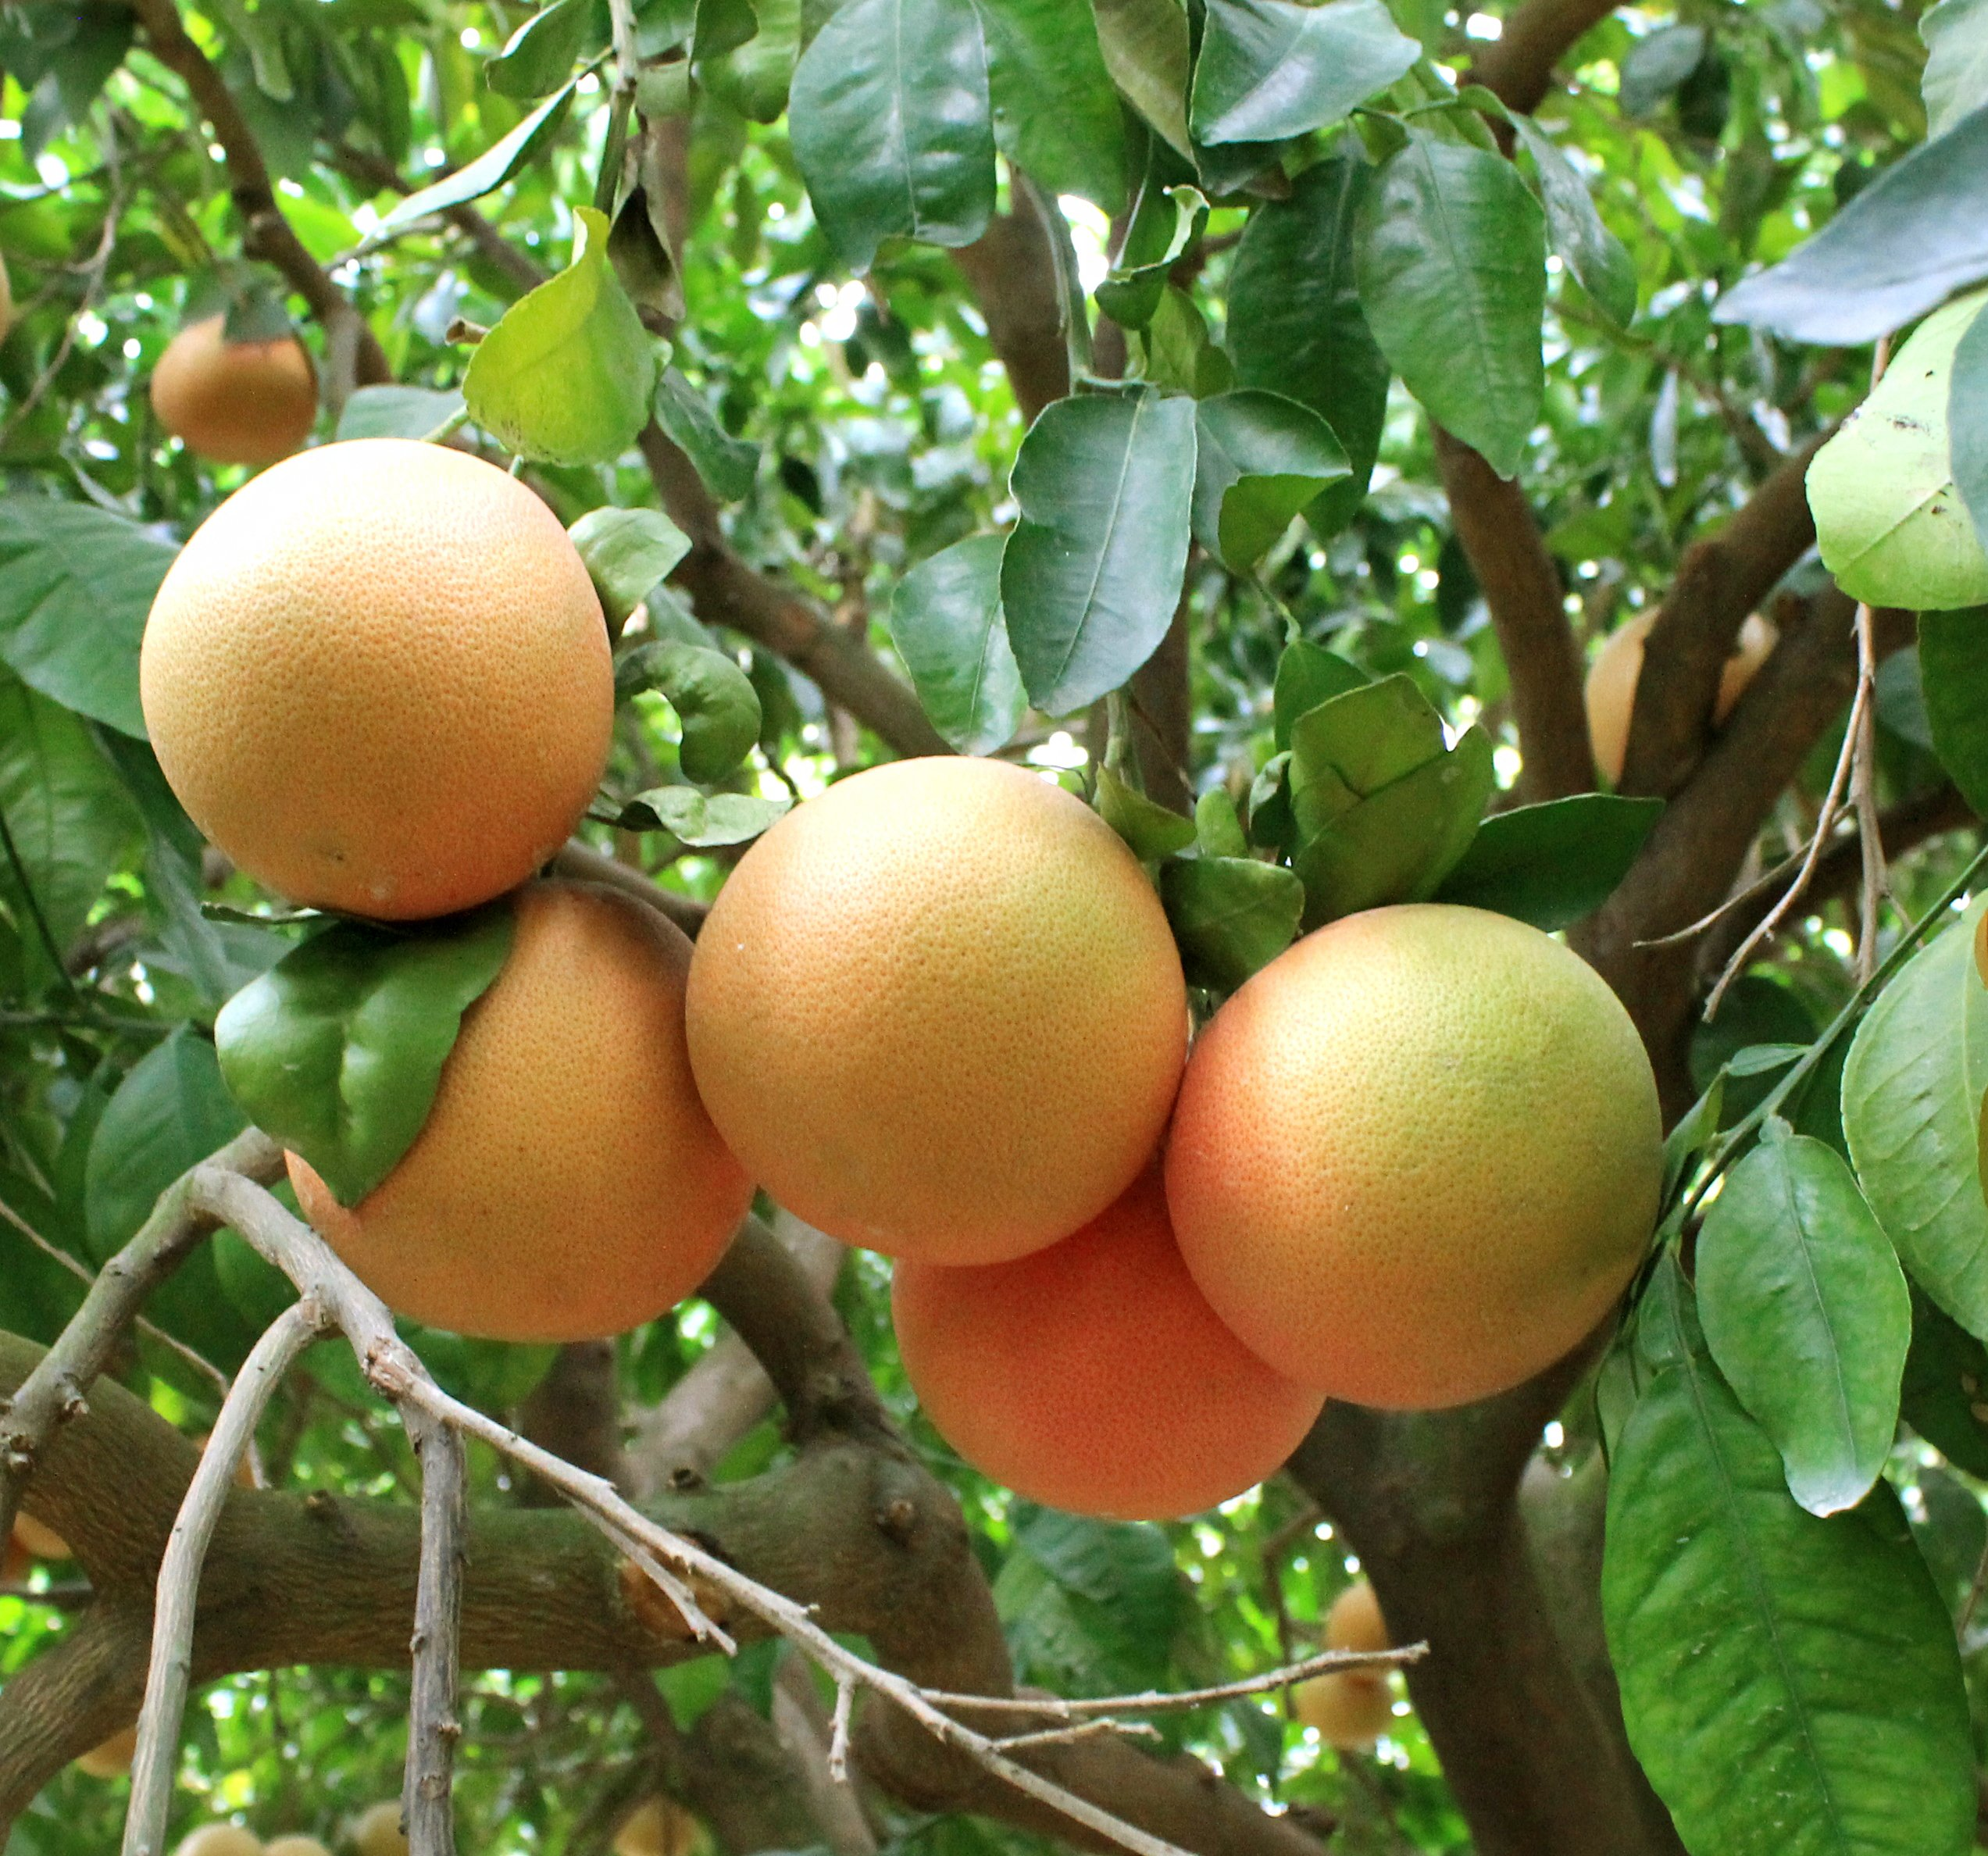 Citrus fruit on a tree